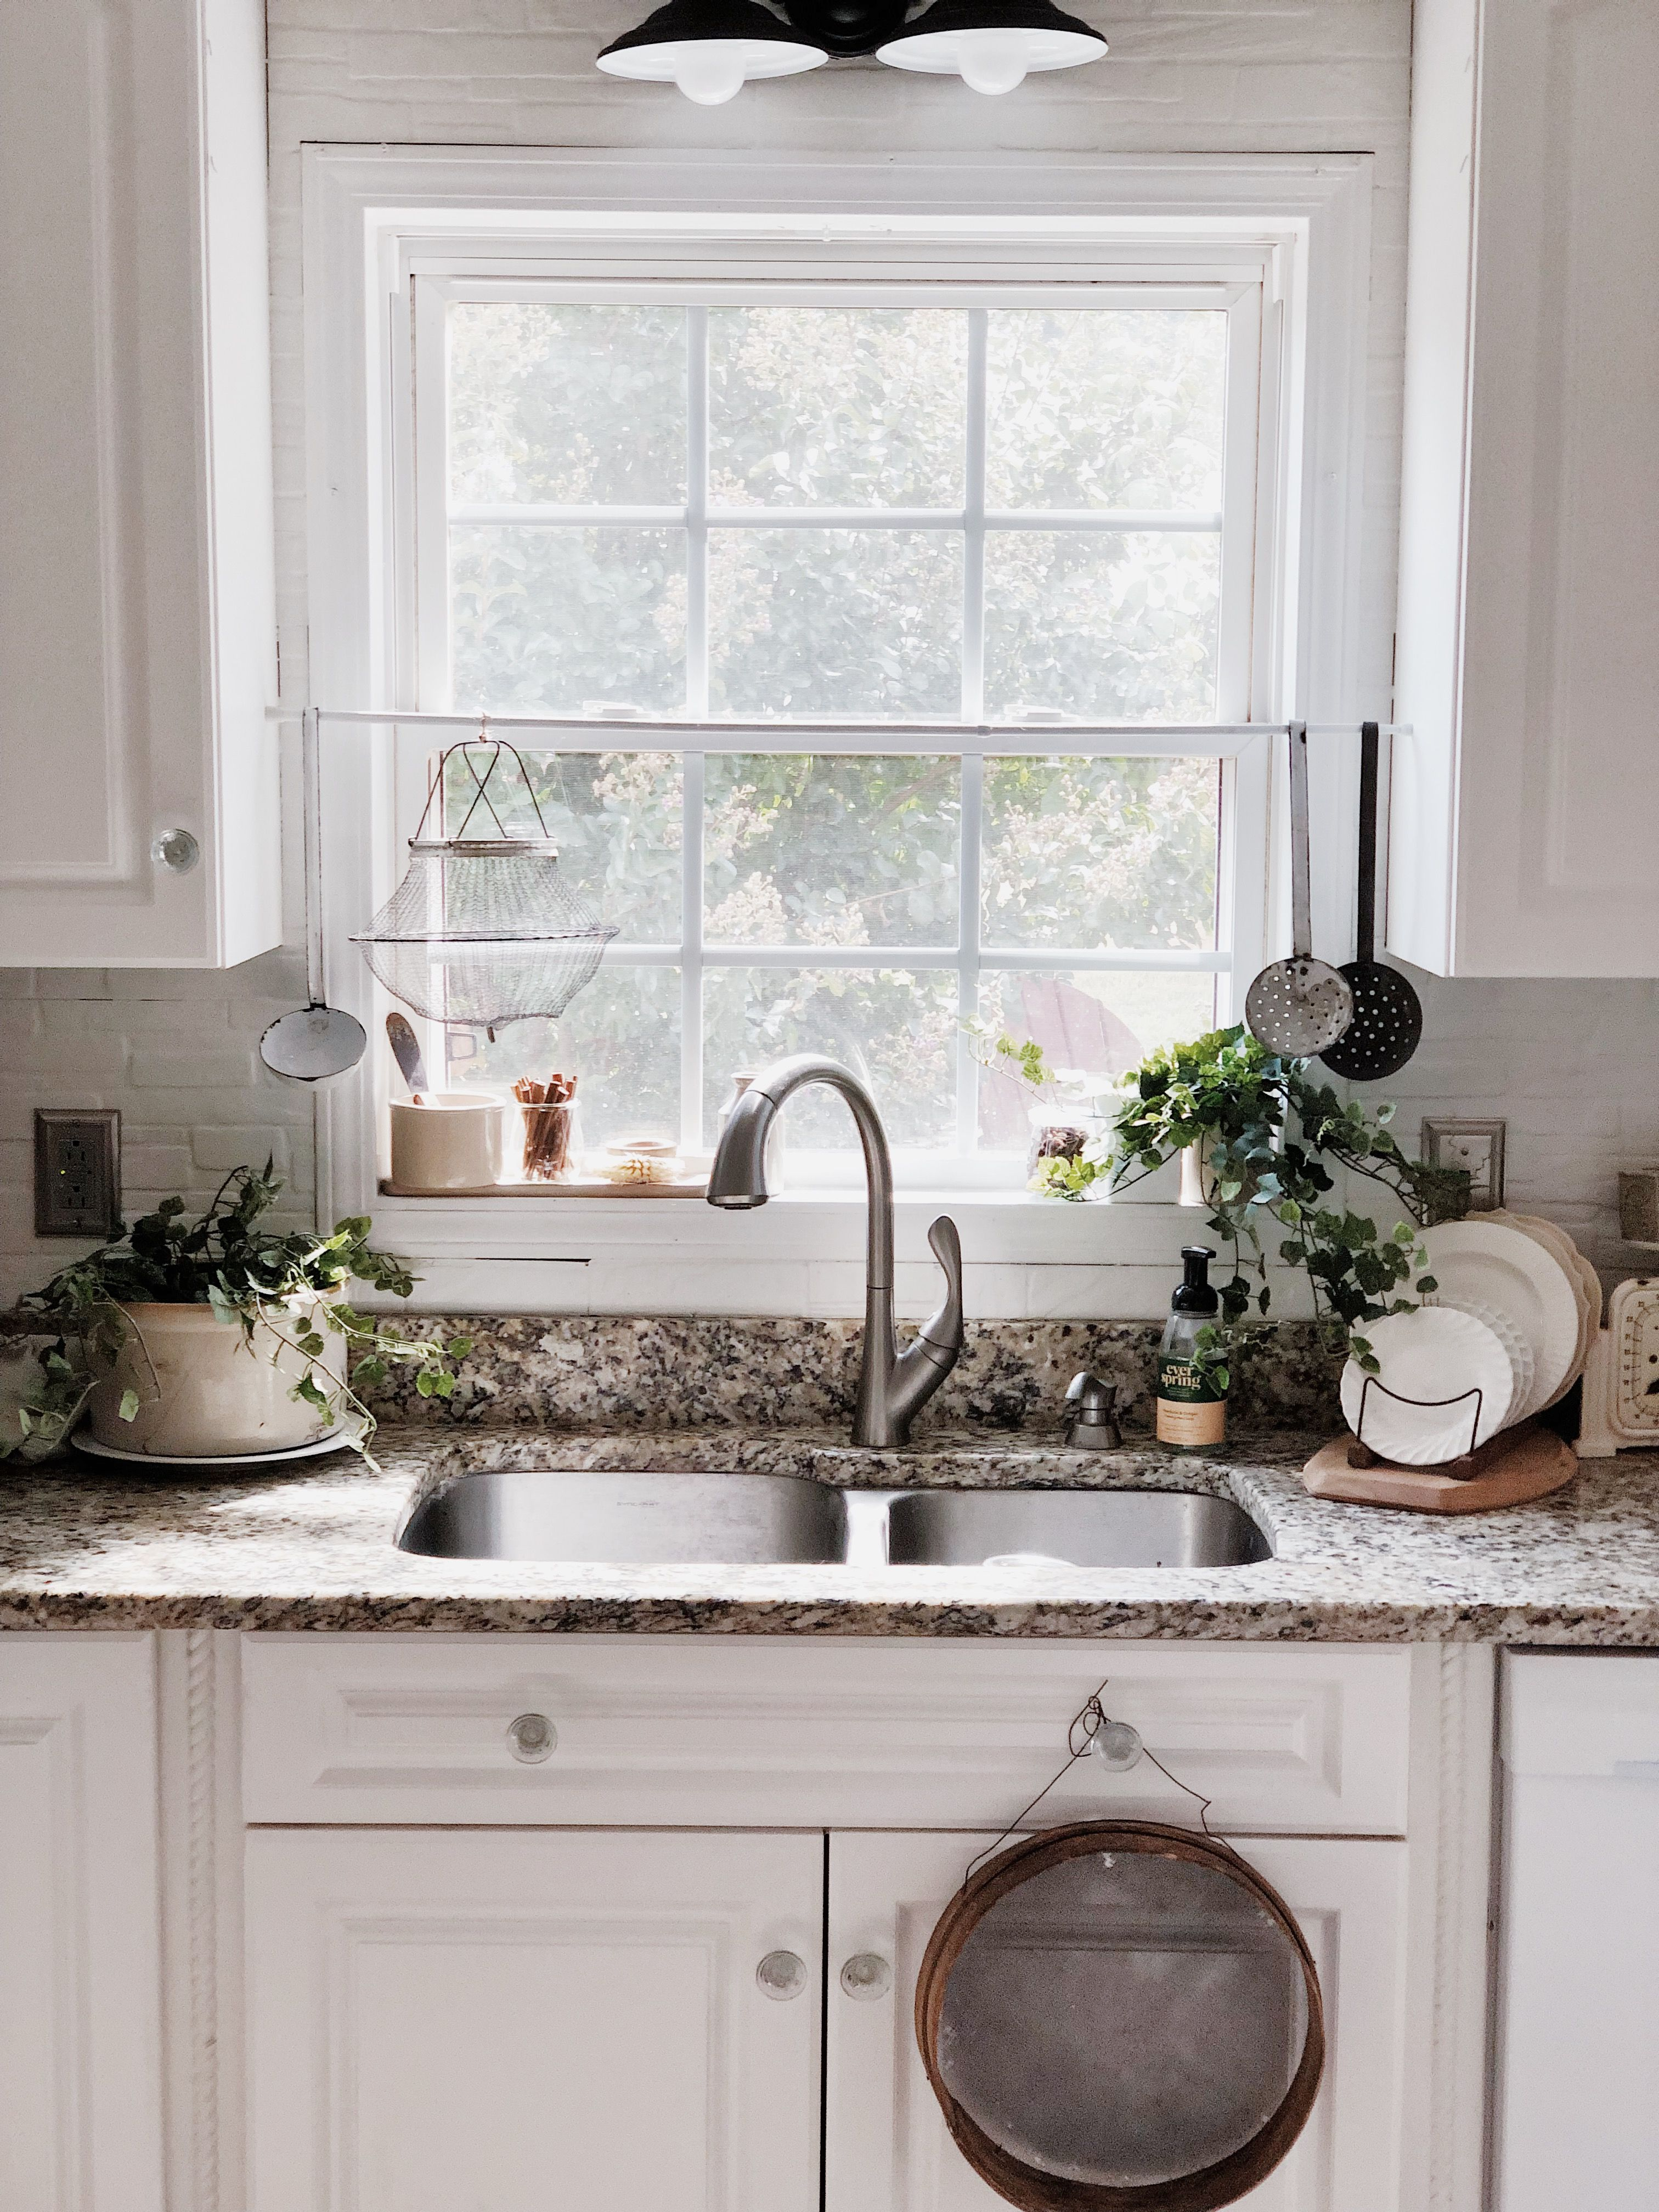 Pin by Keeley🌾Cozy Cat Cottage on Our Cottage | Kitchen ...